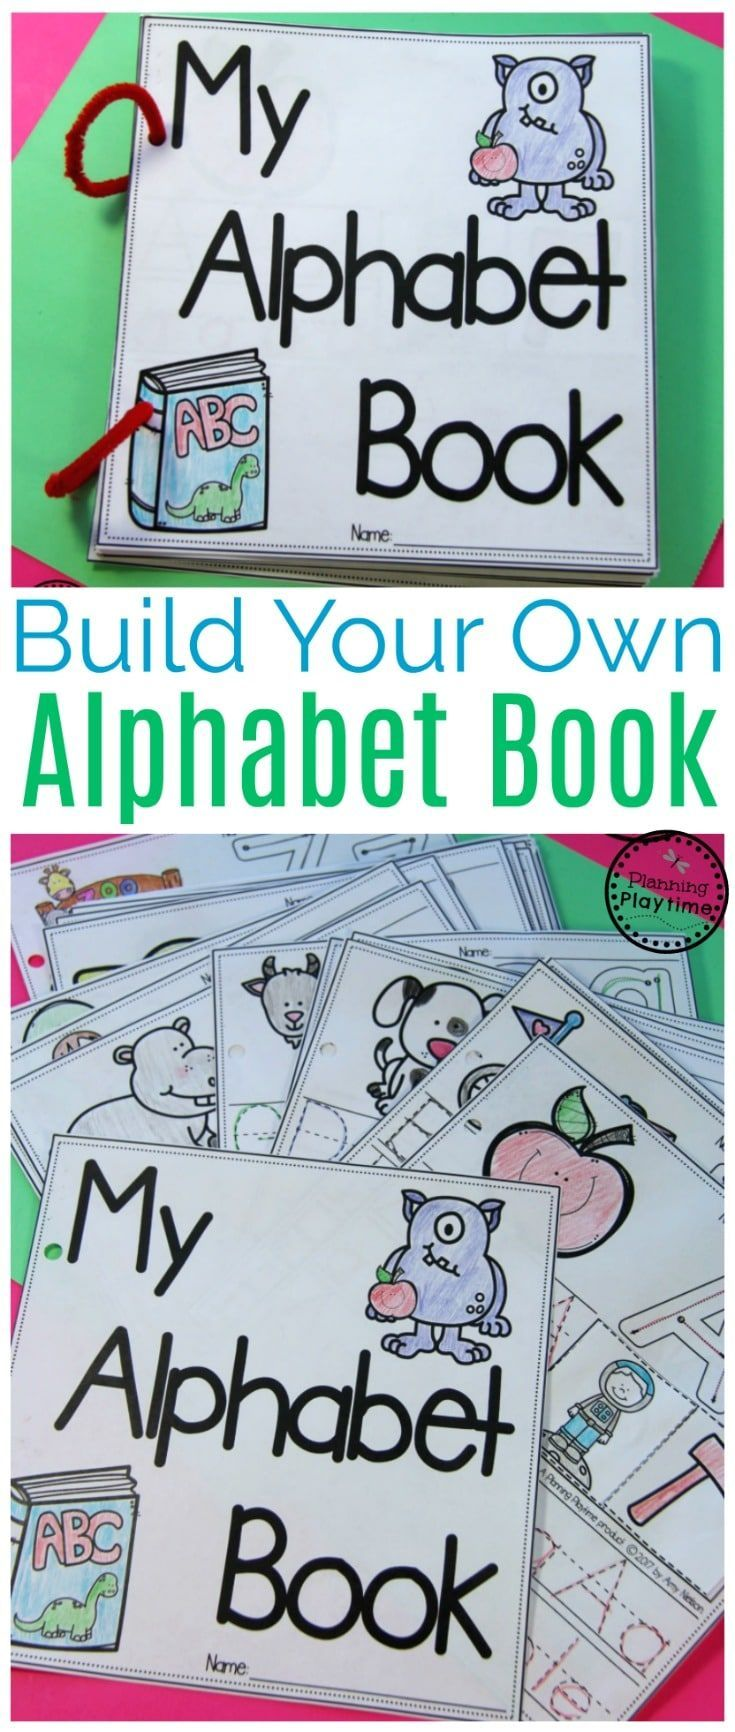 444 best The ABCs images on Pinterest | Letters, Deutsch and ...